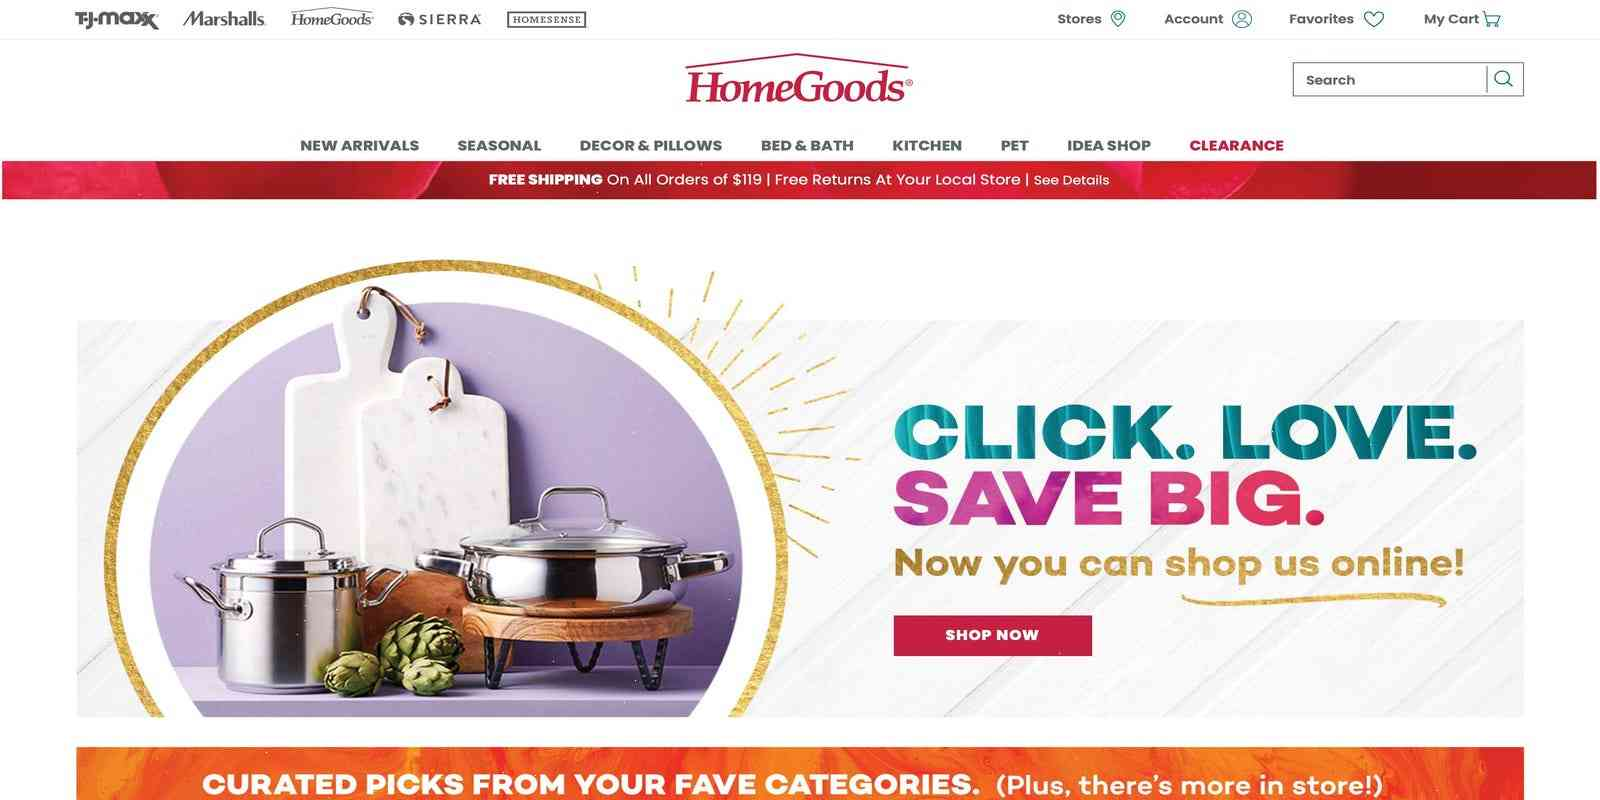 HomeGoods adds e-commerce to fit in with rising demand for online shopping